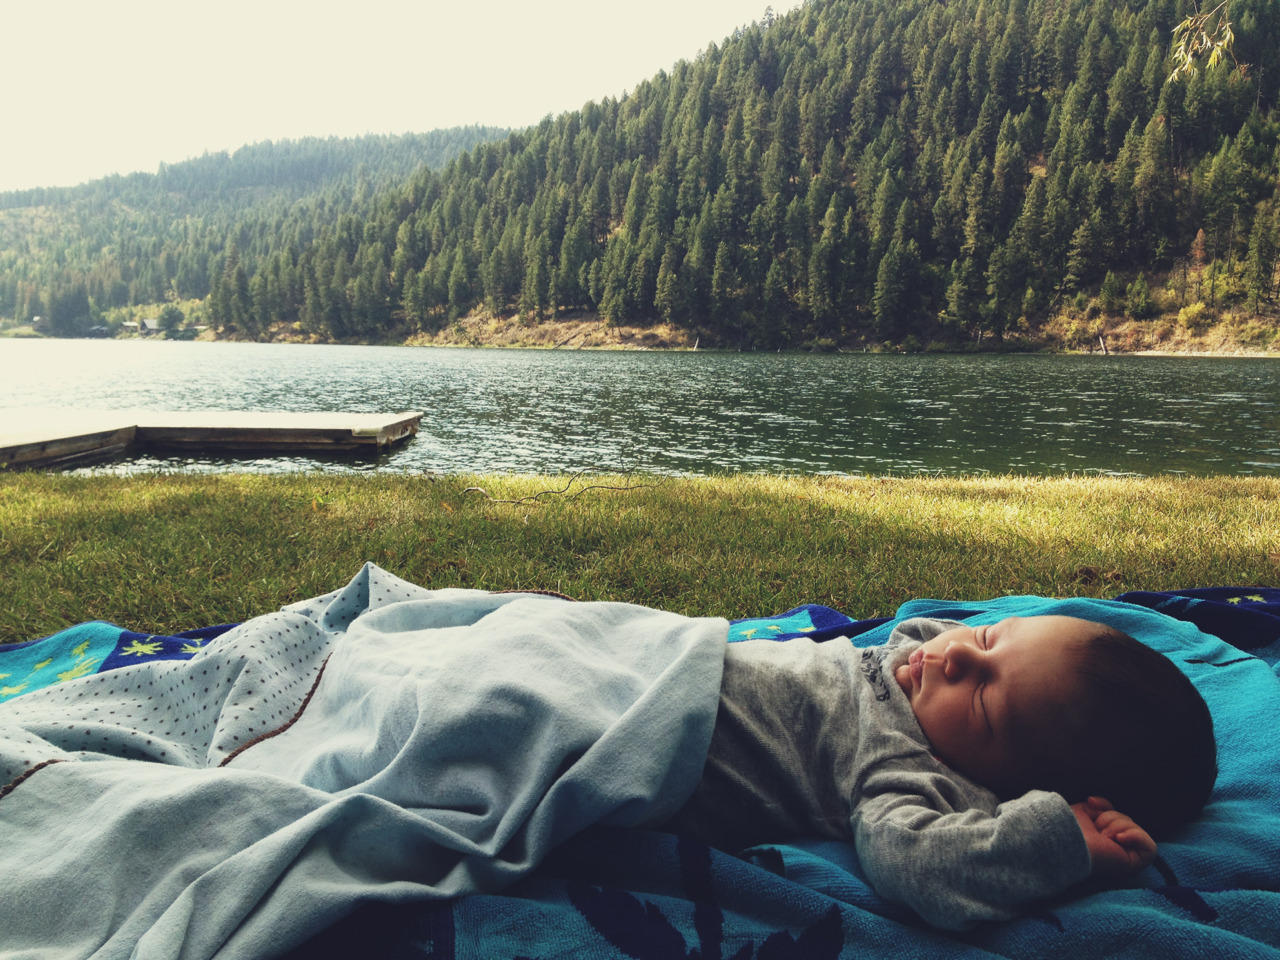 Samuel Hudson's first trip to the lake.